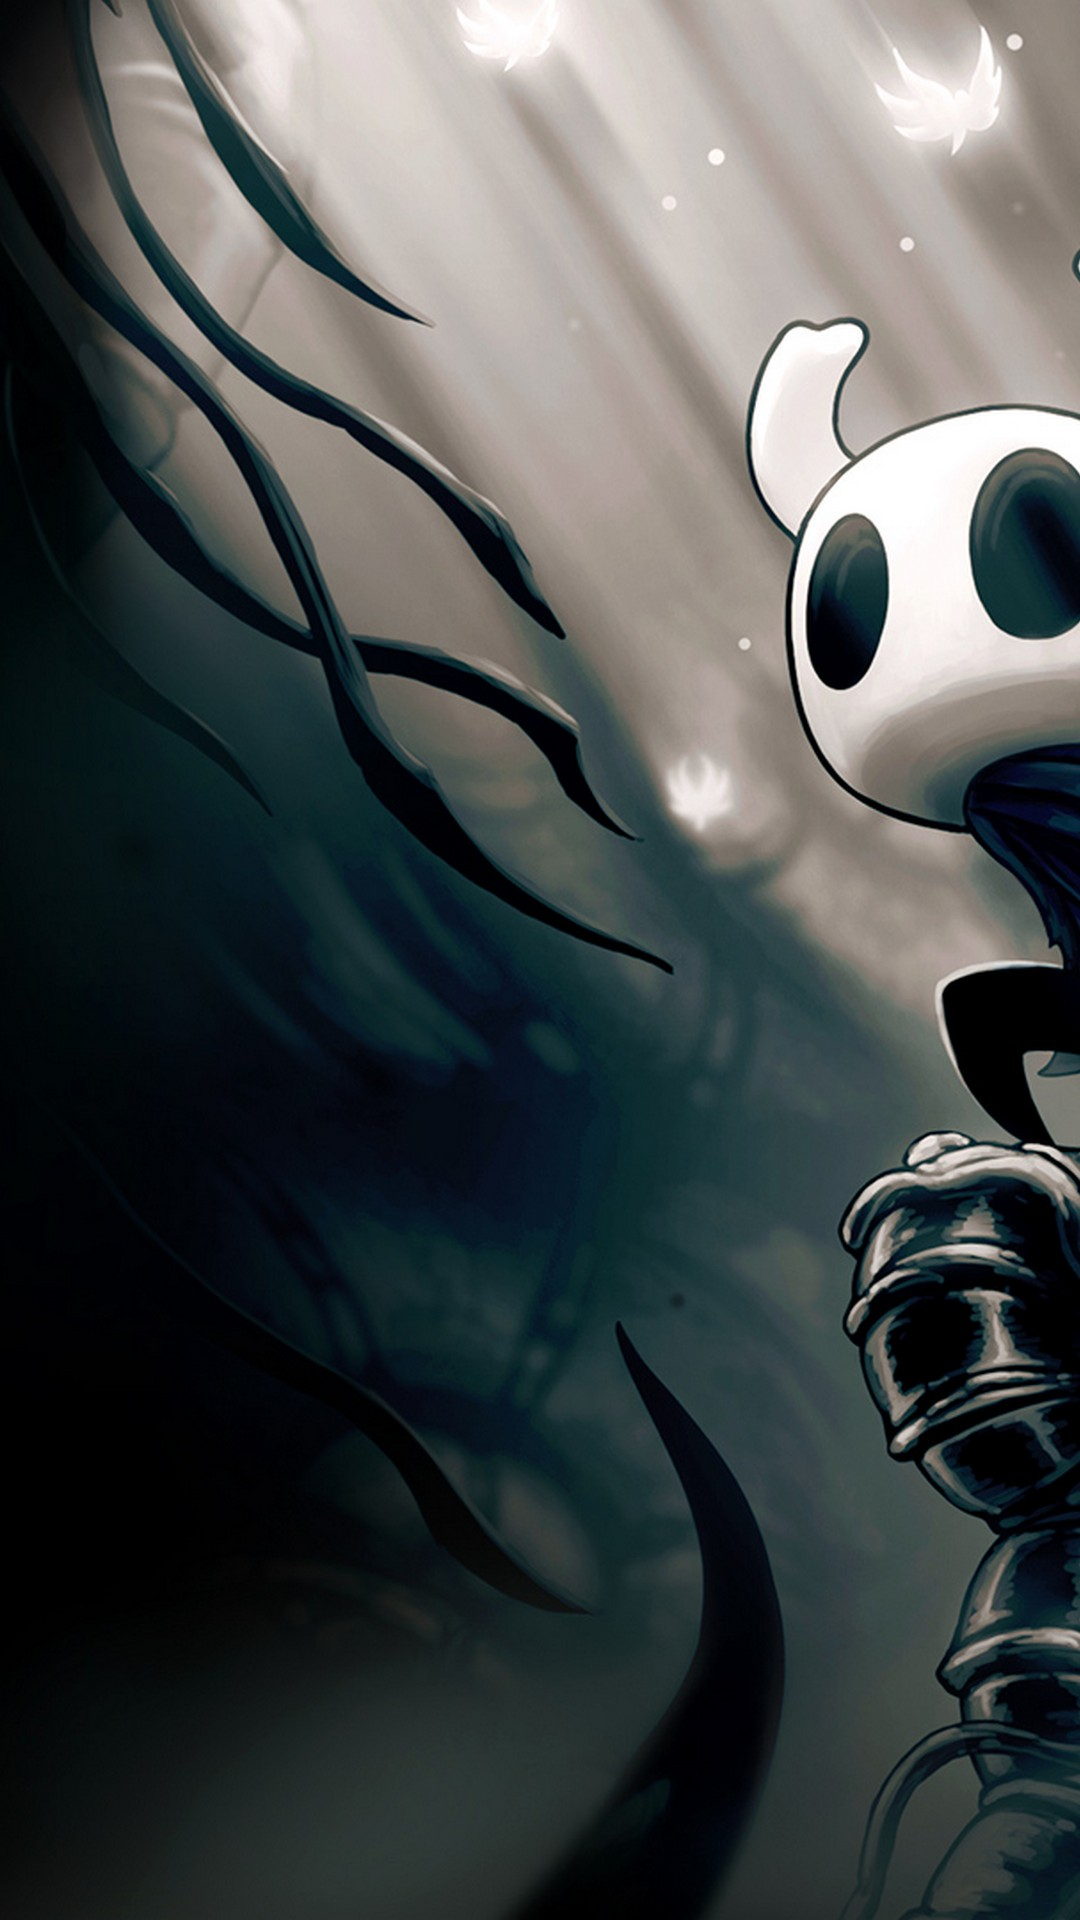 Hollow Knight Wallpaper For Phone HD 2020 Phone Wallpaper HD 1080x1920